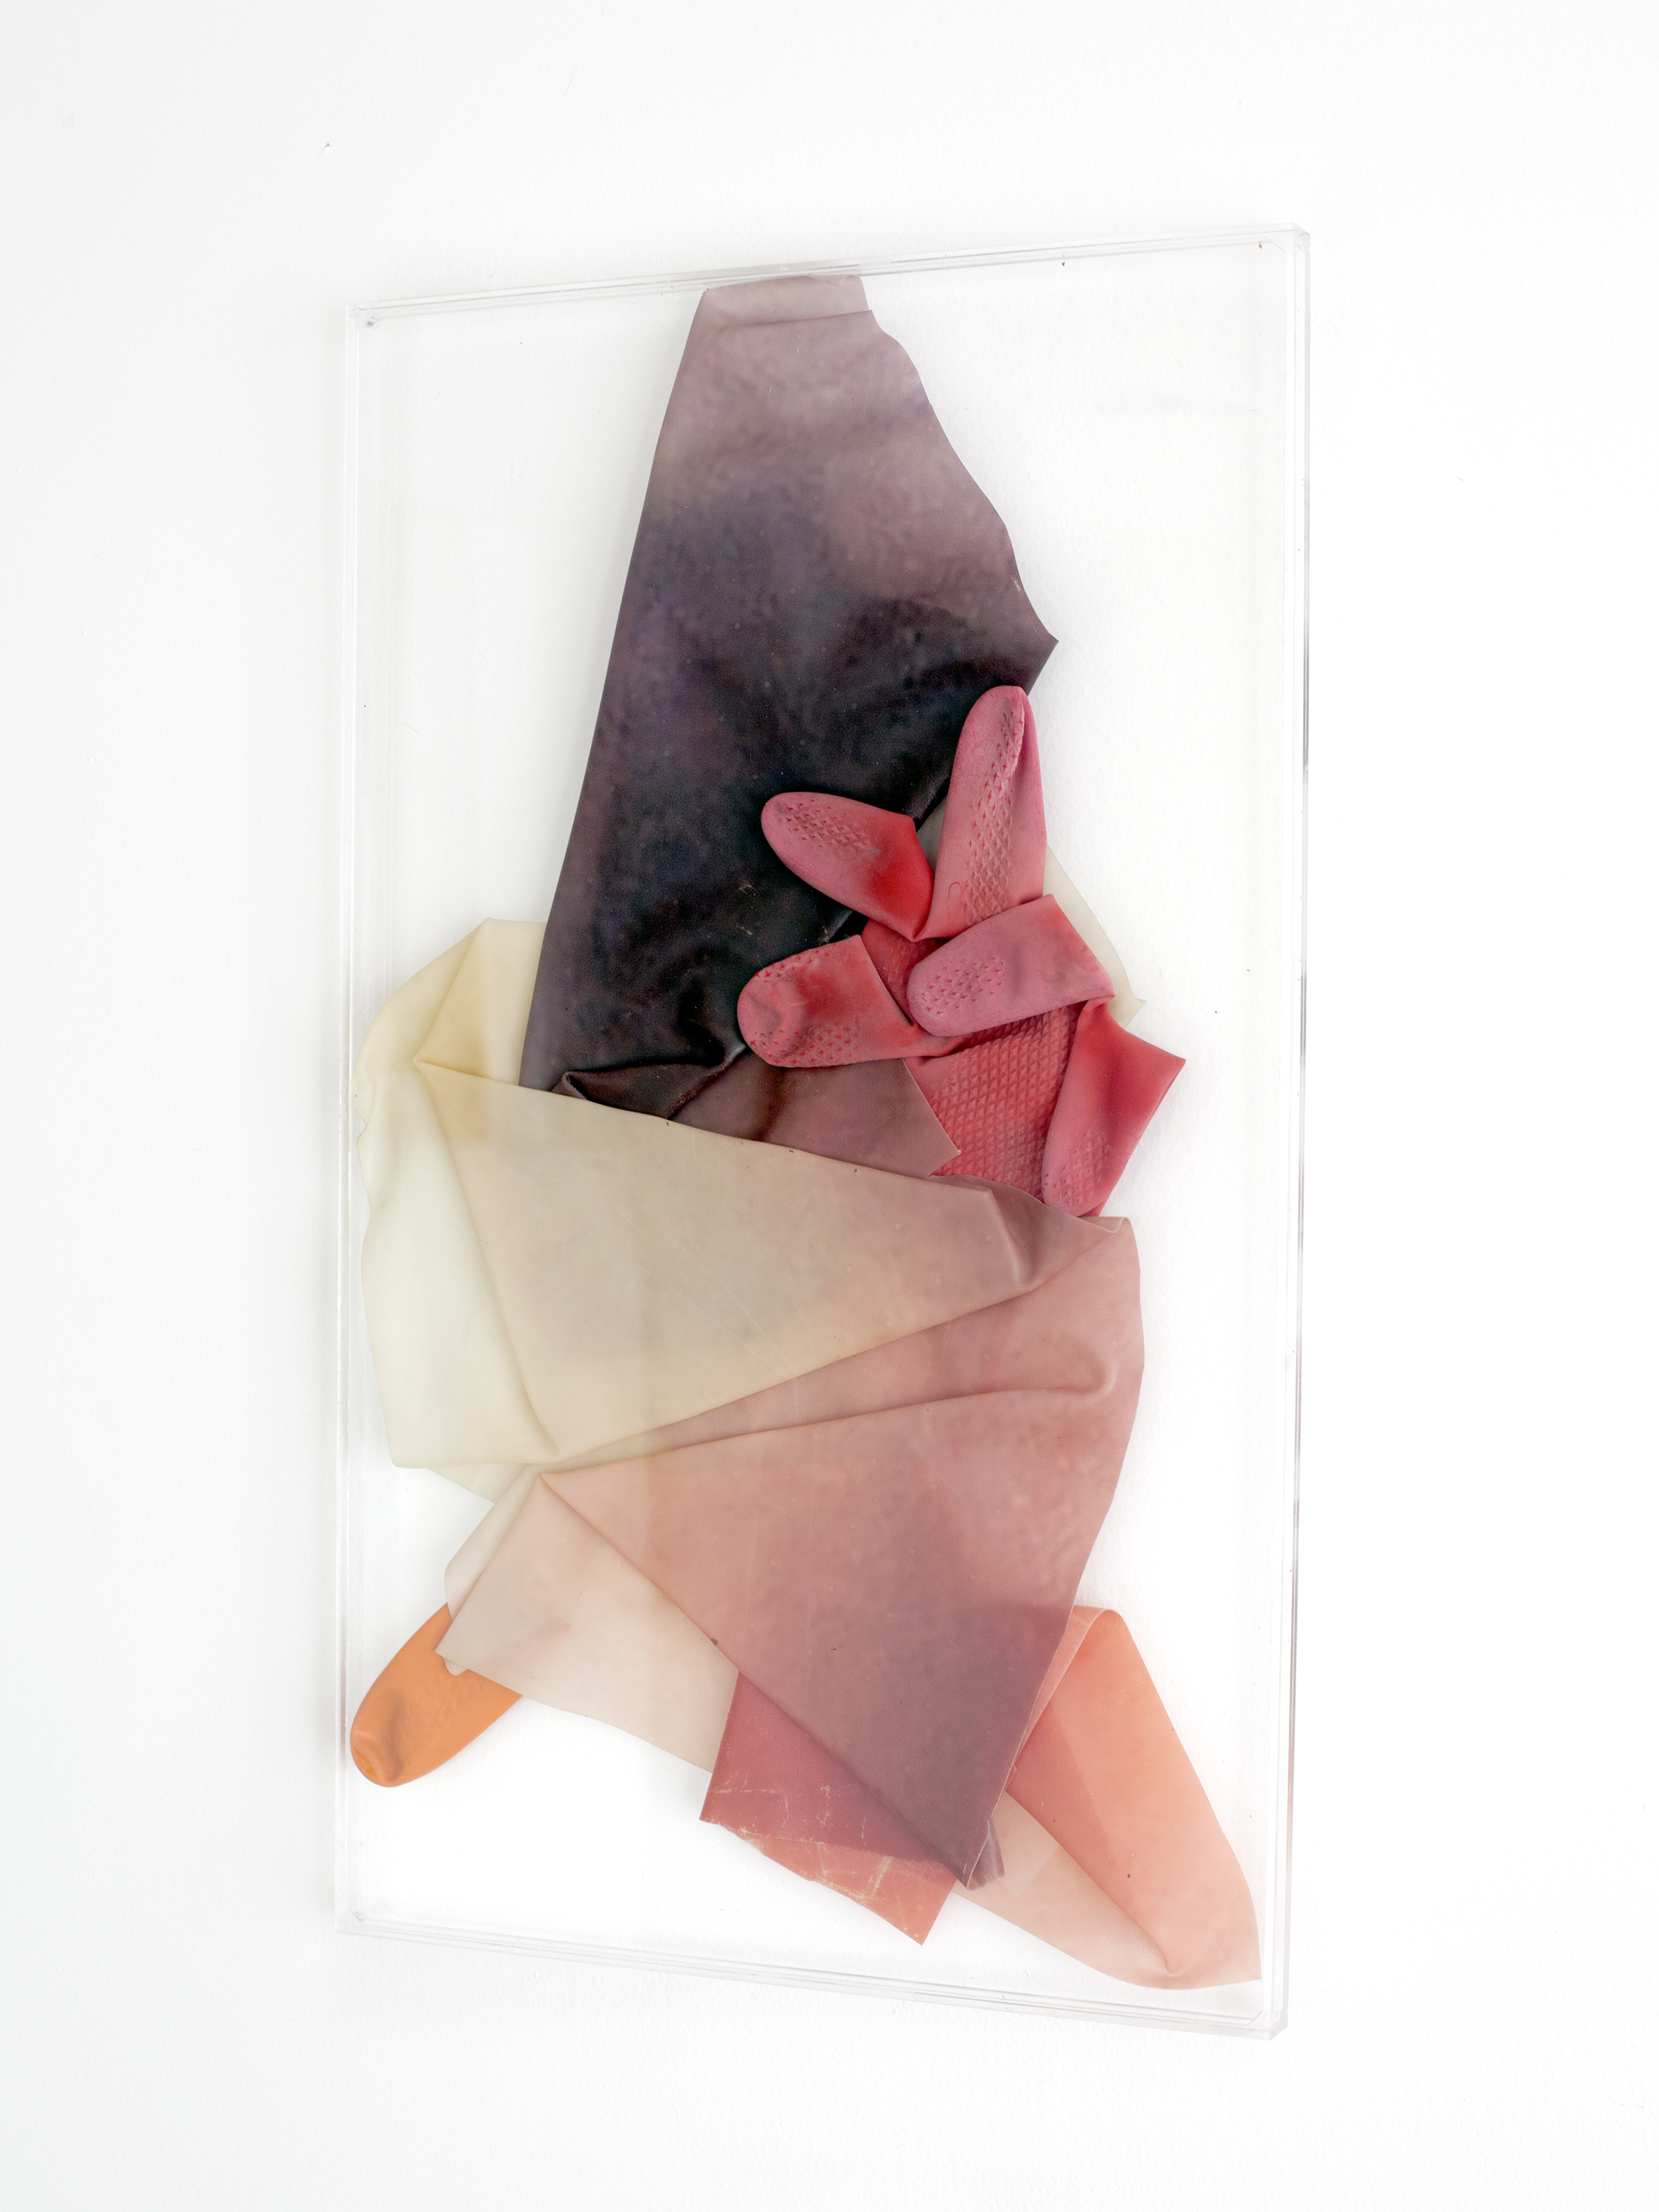 SALAAM,  2018, sculpture (unique), 50 X 30 X 1,6 cm, inkjetprint on latex, transparent acrylic, rubber gloves